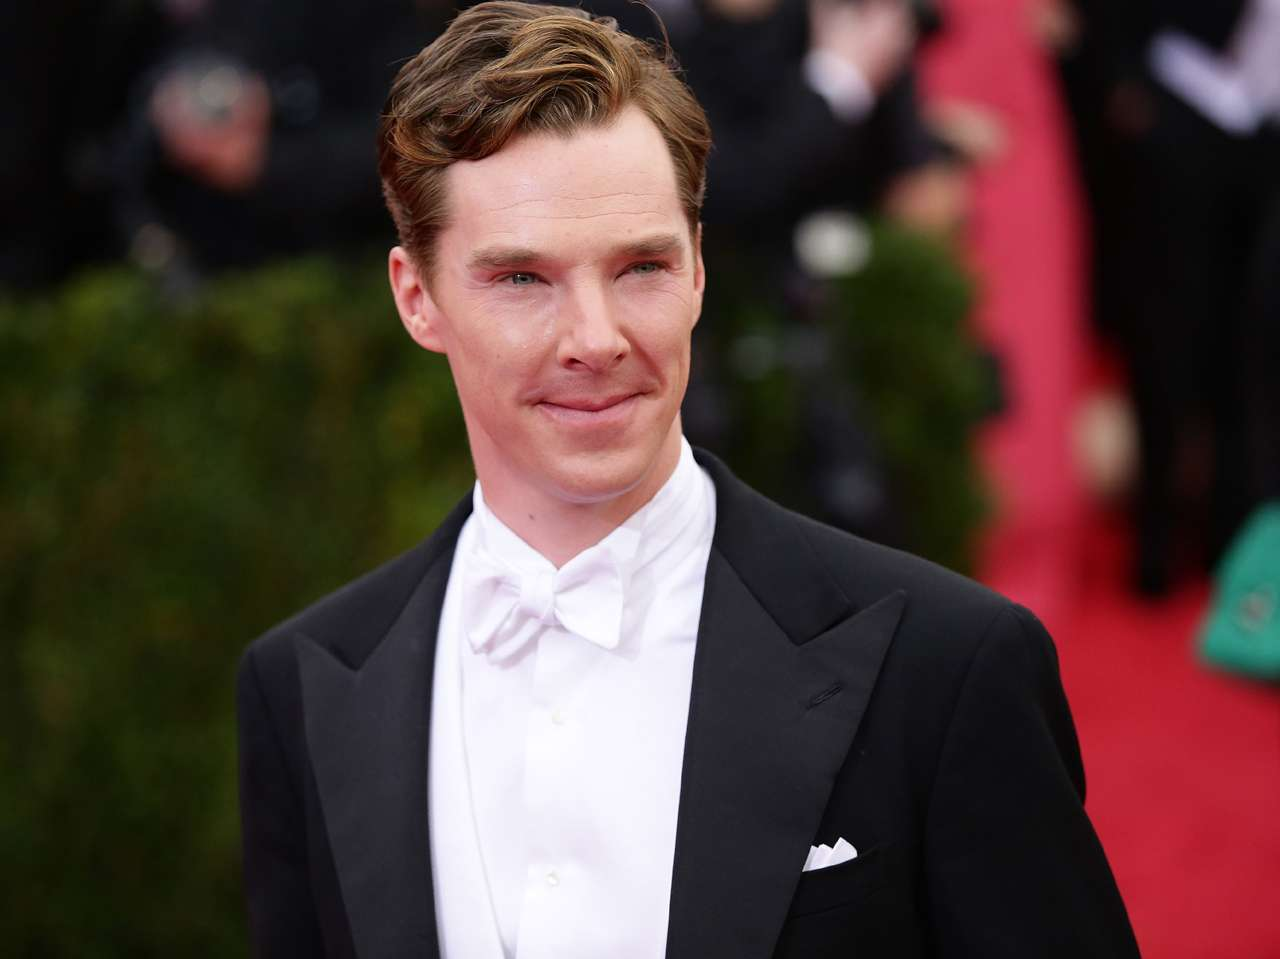 Benedict Cumberbatch Foto: Getty Images